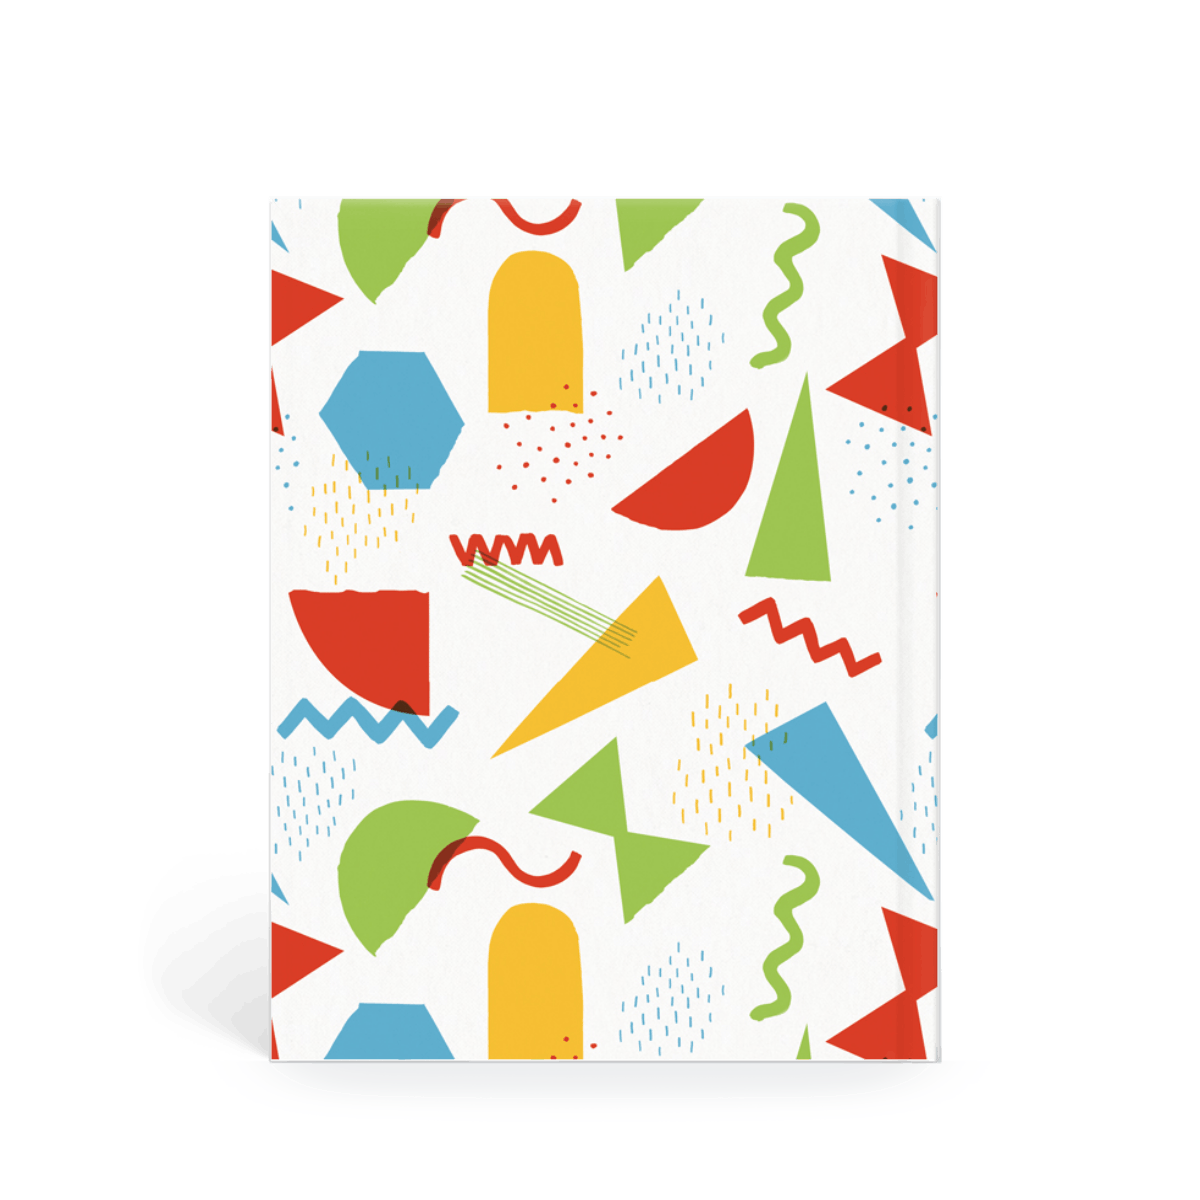 Https%3a%2f%2fwww.papier.com%2fproduct image%2f44303%2f27%2fshapes colours 11113 back 1534772674.png?ixlib=rb 1.1